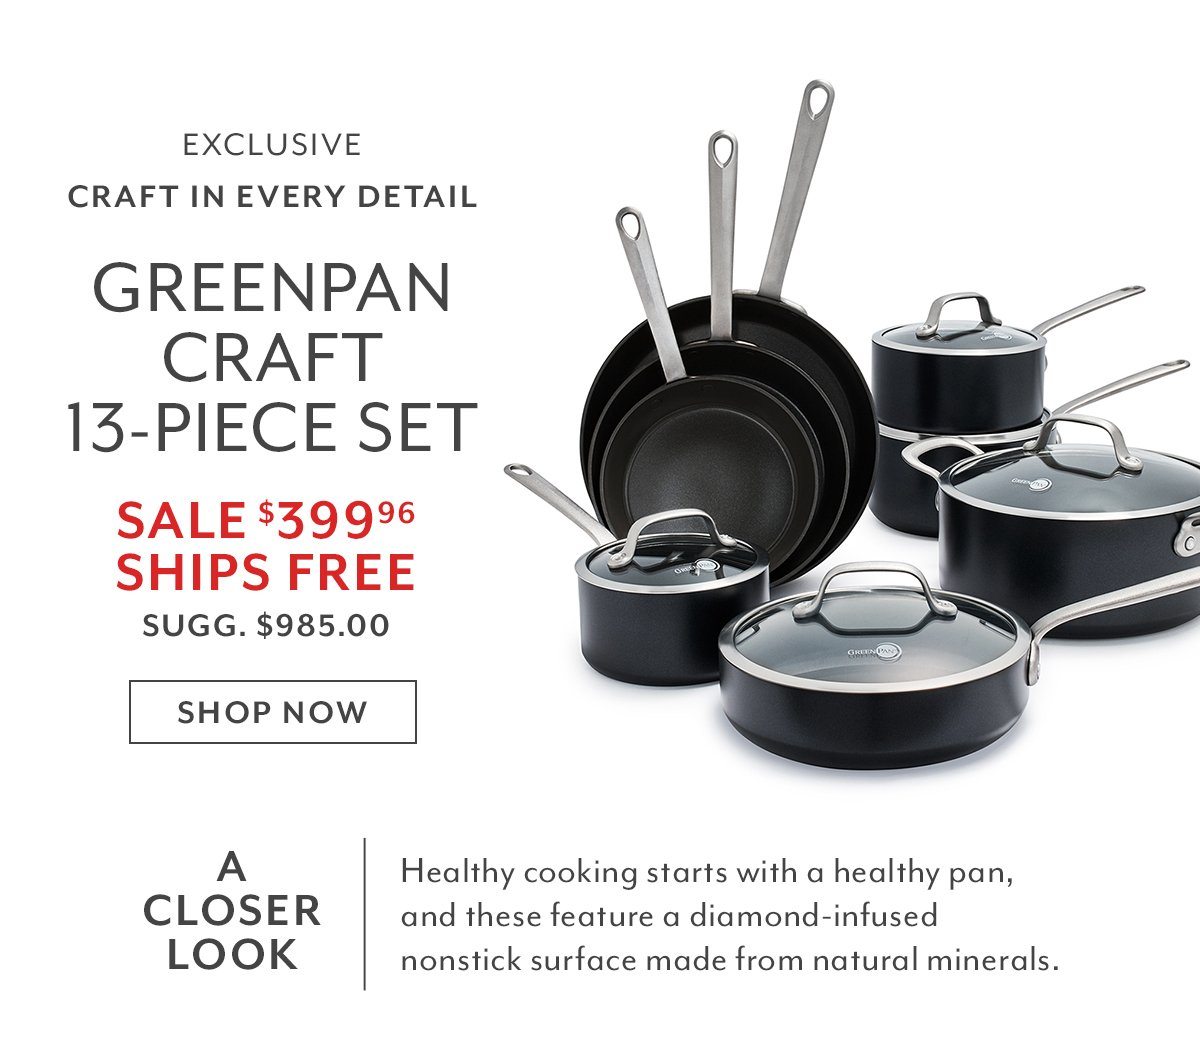 GreenPan Craft 13-PC Set